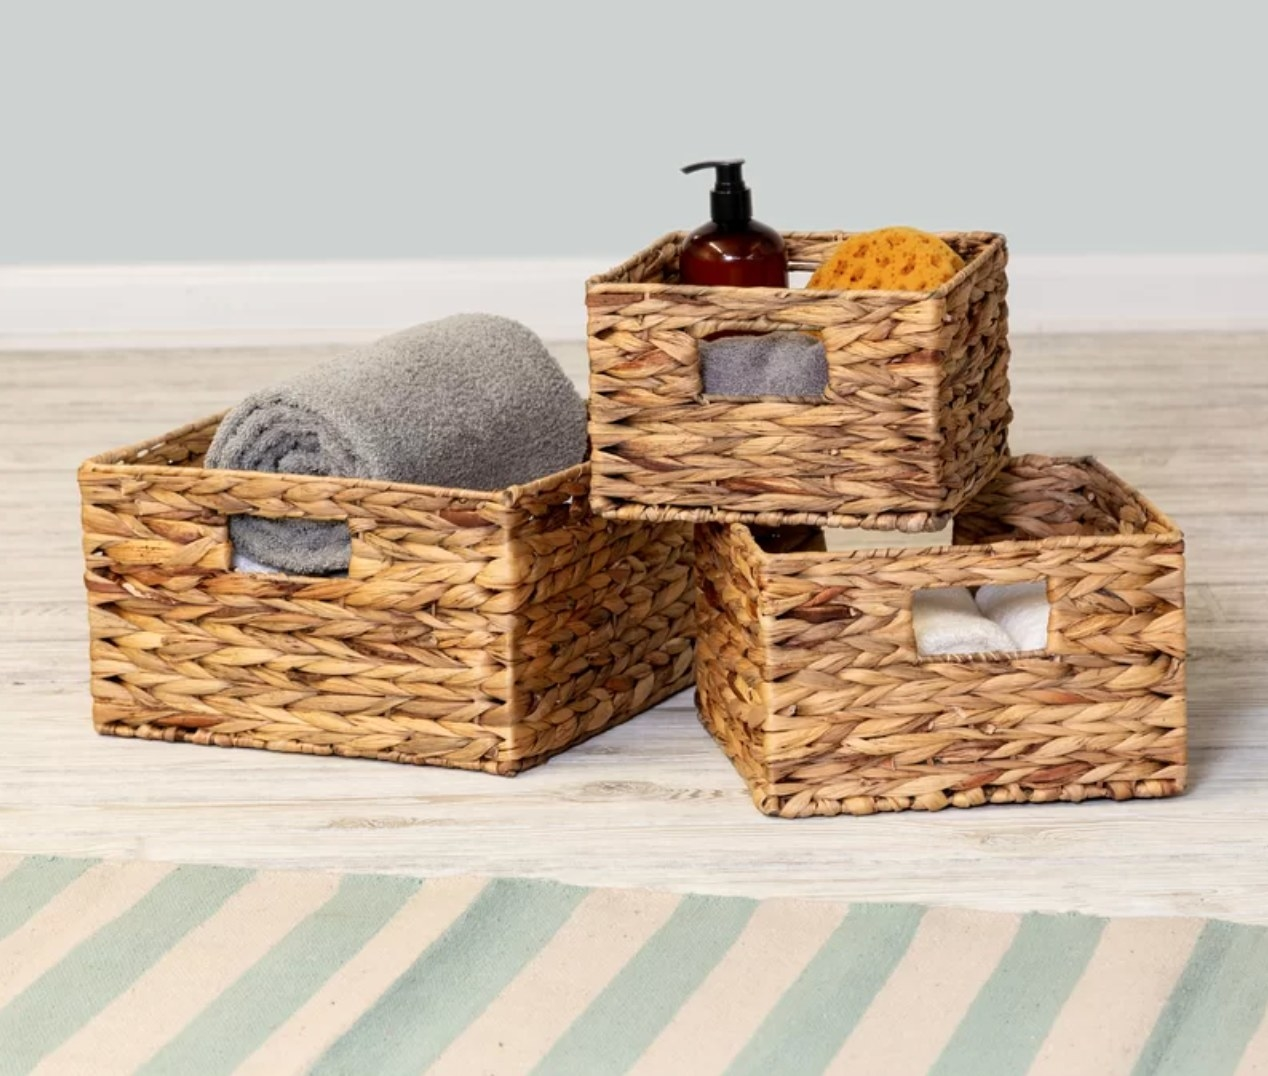 The wicker baskets being used to hold bathroom items such as towel and loofah